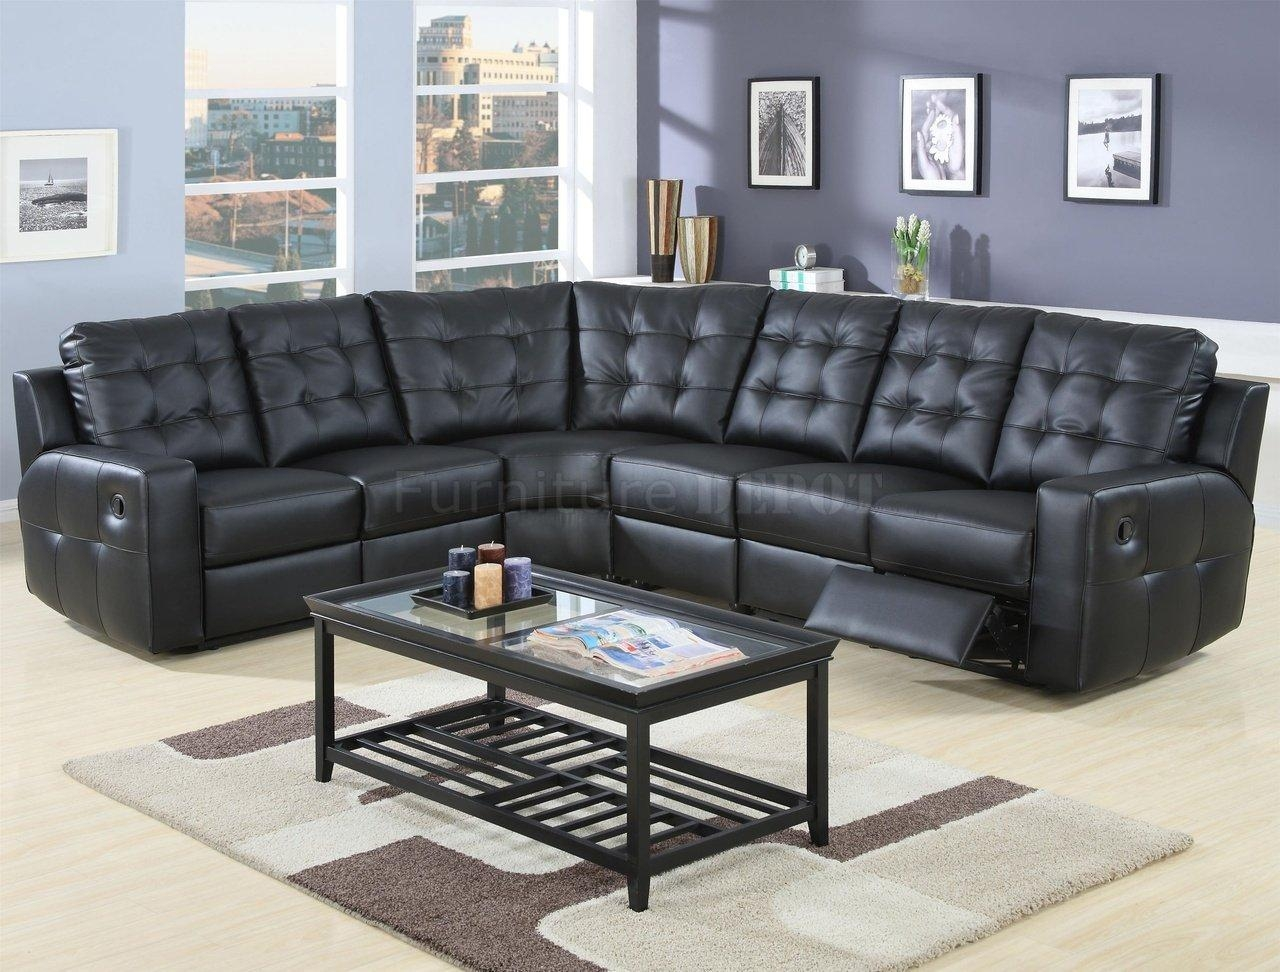 Furniture: Jedd Fabric Reclining Sectional Sofa | Sectional In Jedd Fabric Reclining Sectional Sofa (View 3 of 20)